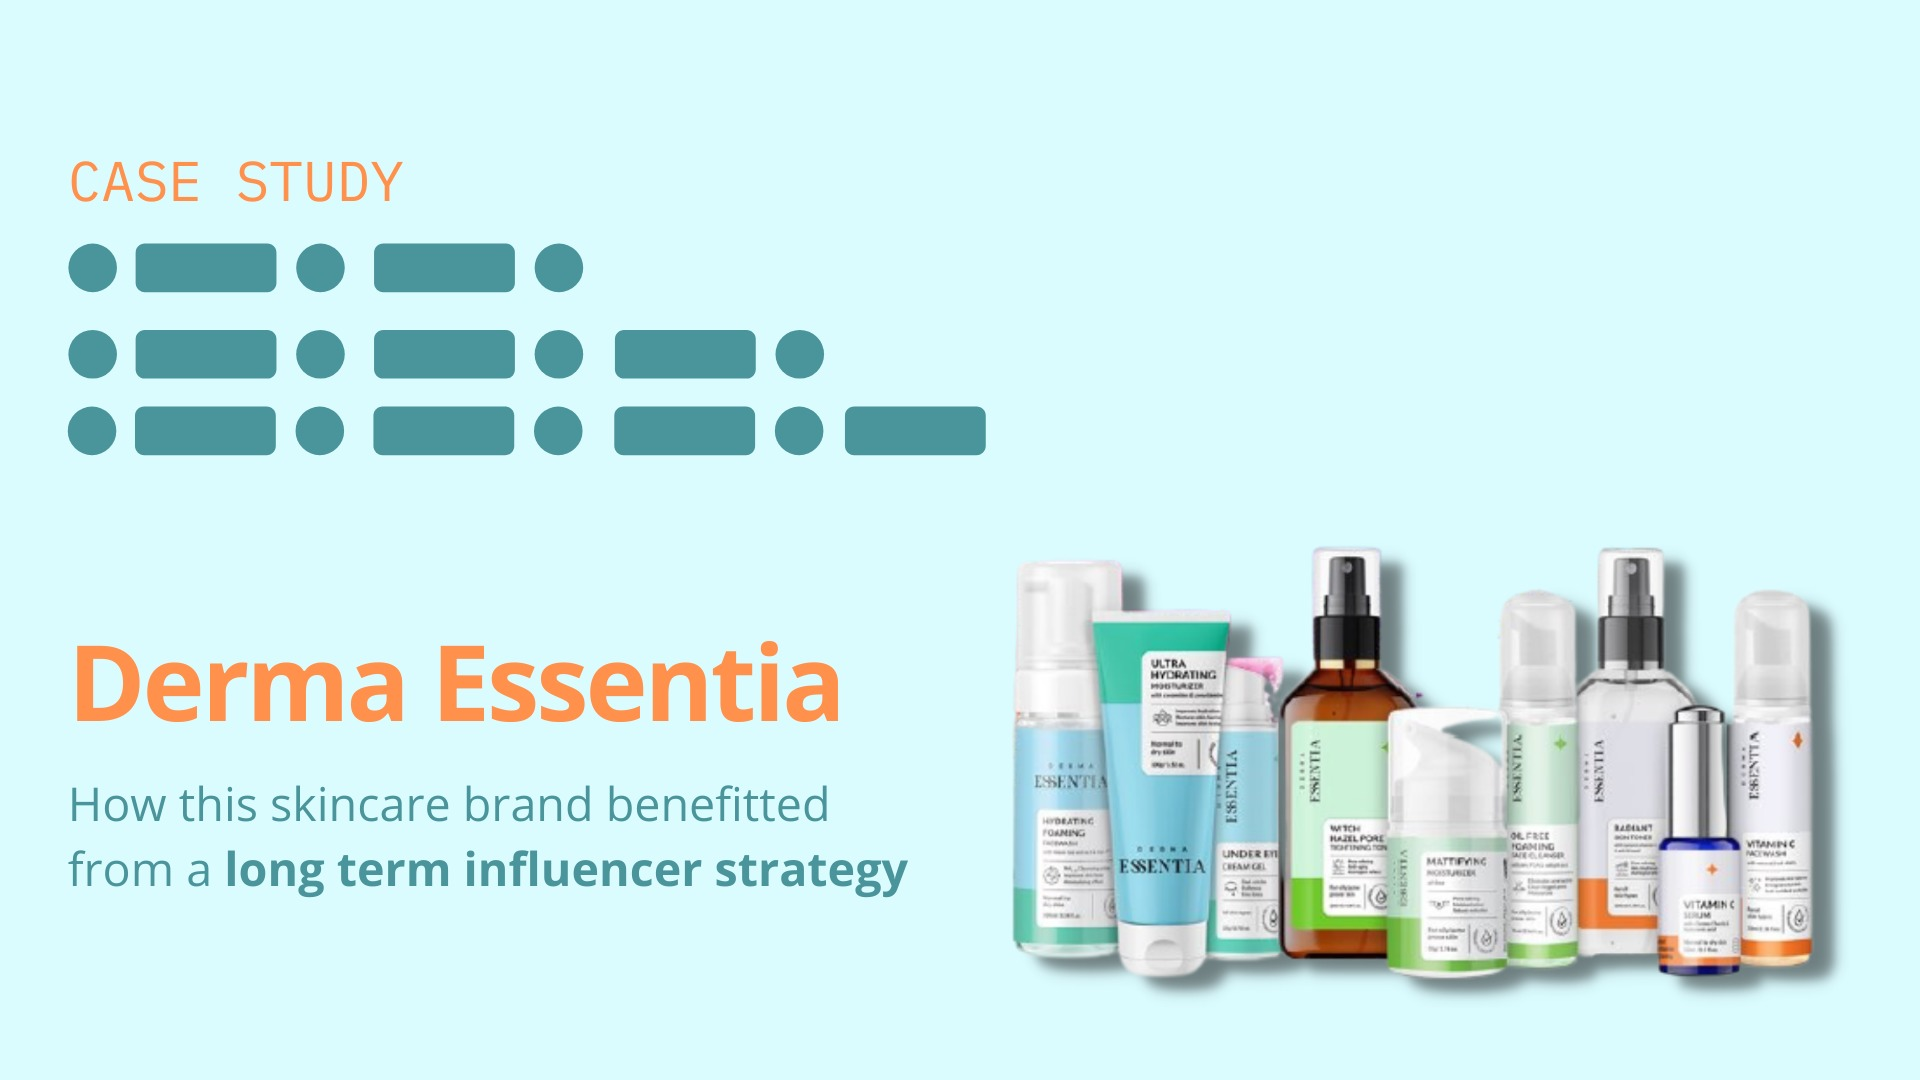 Derma Essentia: How this skincare brand benefitted from a long term influencer strategy image